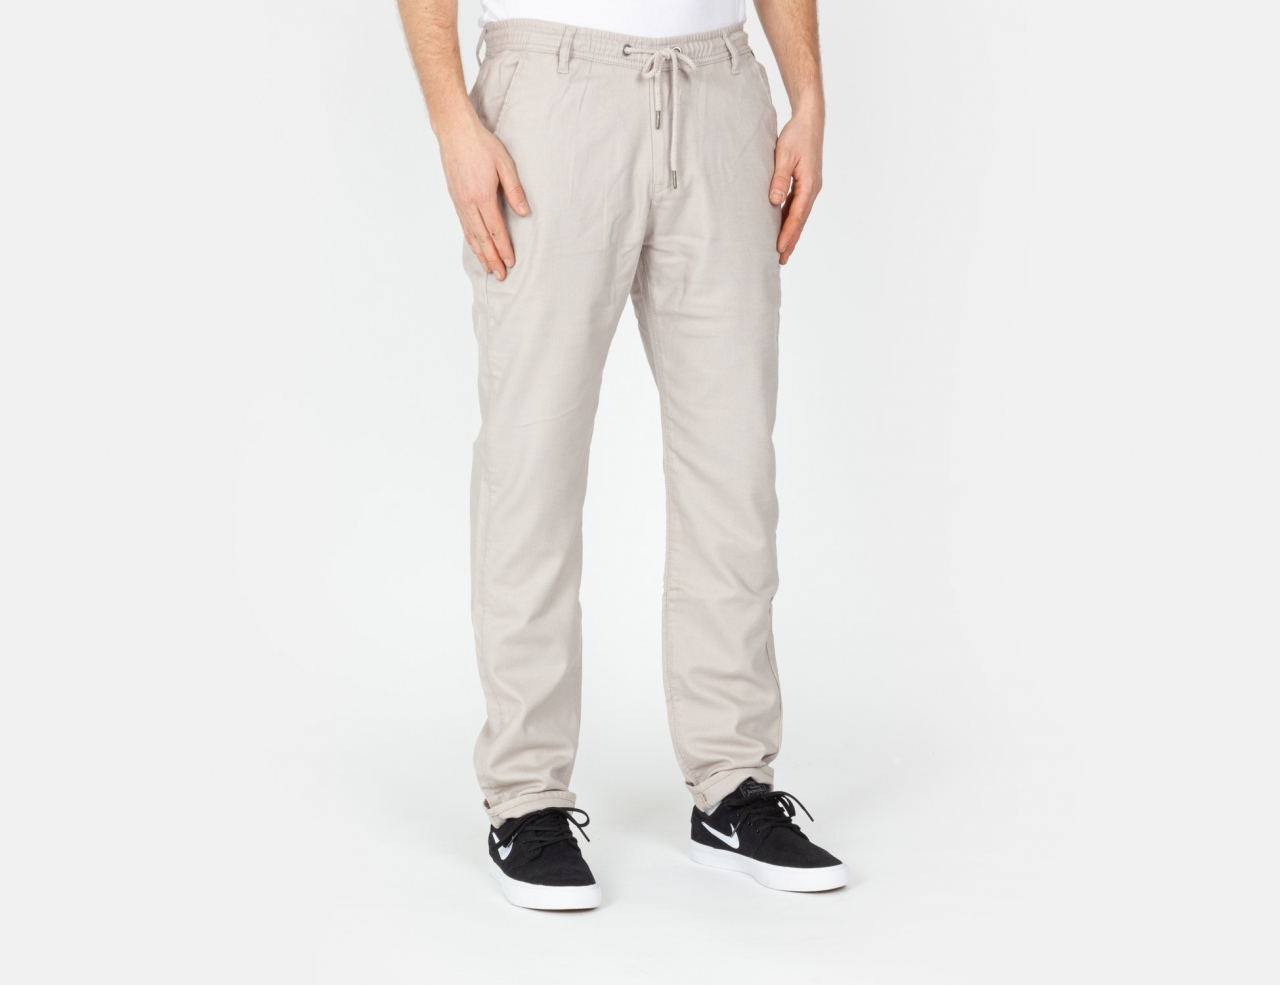 Reell Jeans Reflex Easy Superior Chino Pant - Beige